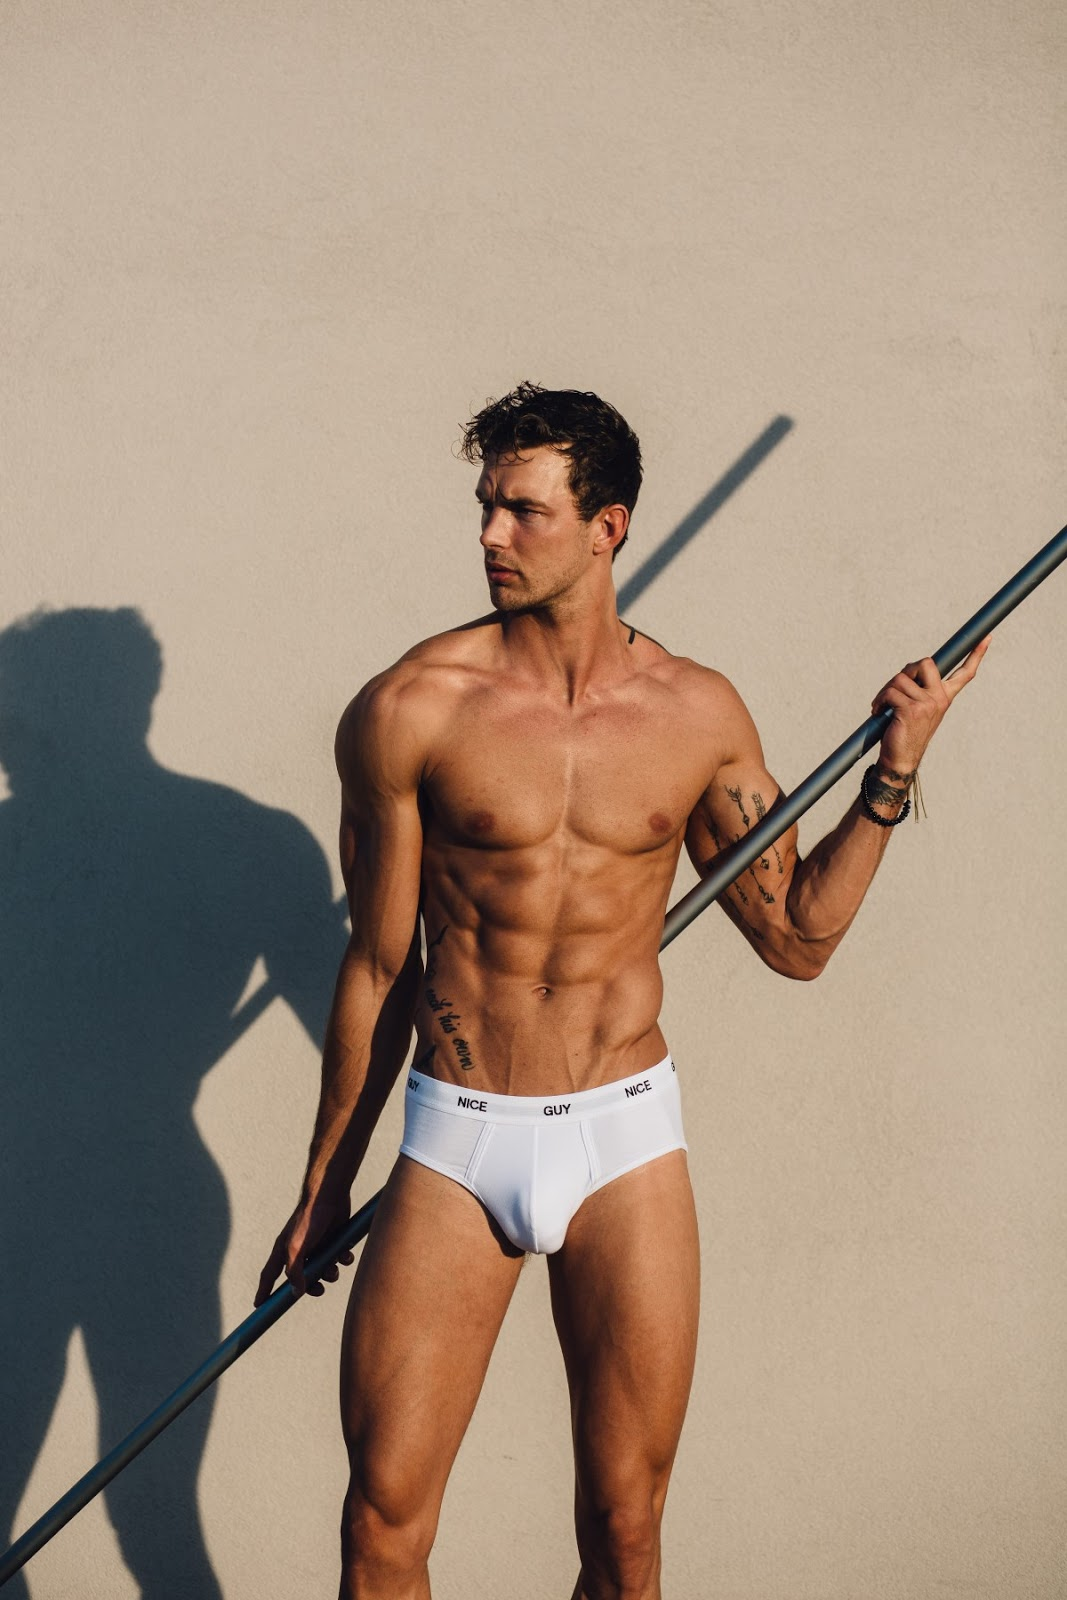 christian-hogue-by-taylor-miller13